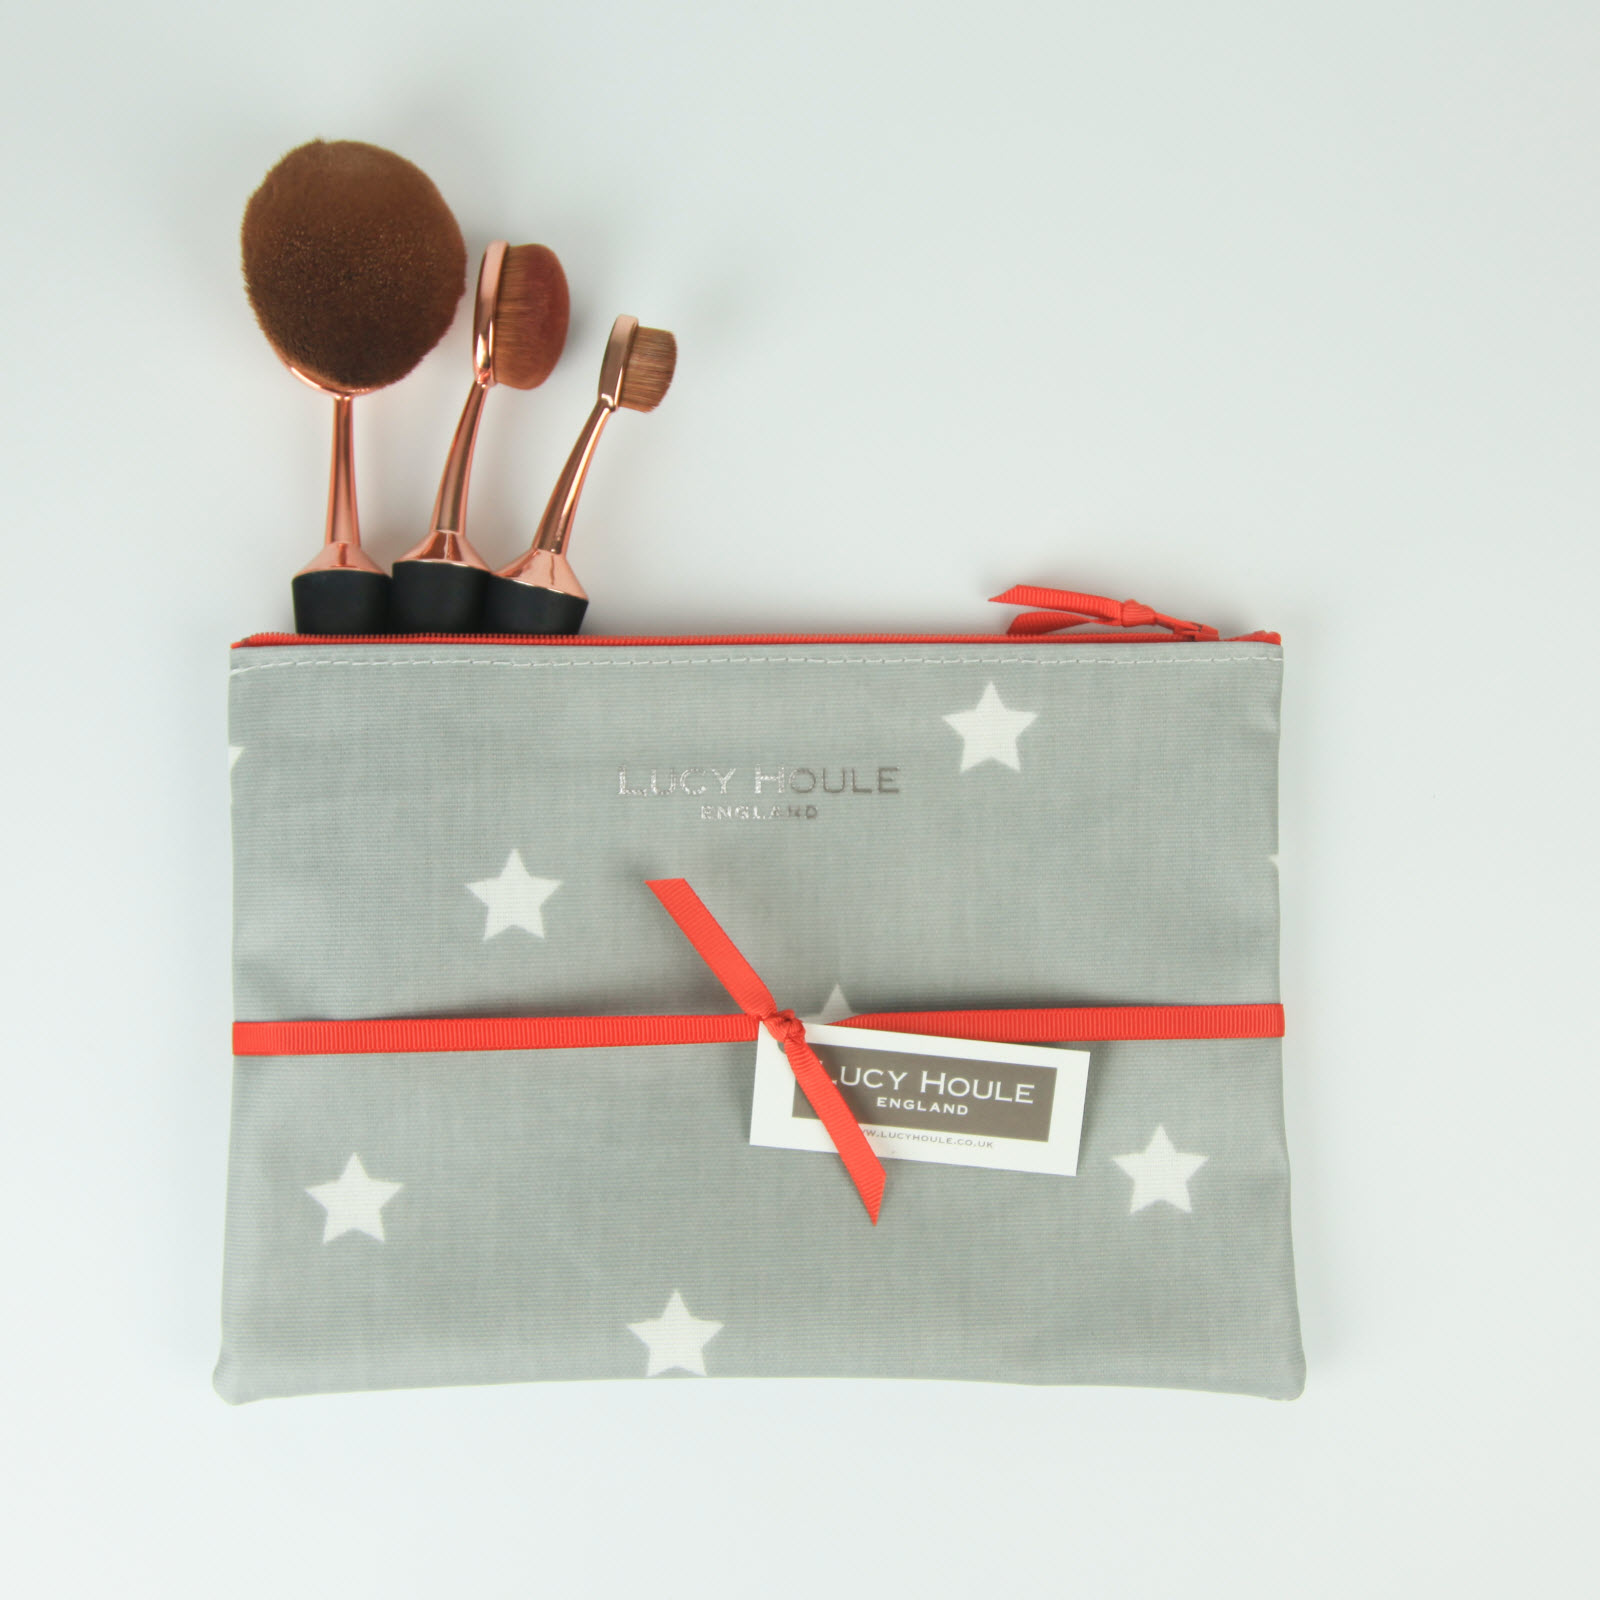 Grey & White Star Make-Up Bag with White Zip